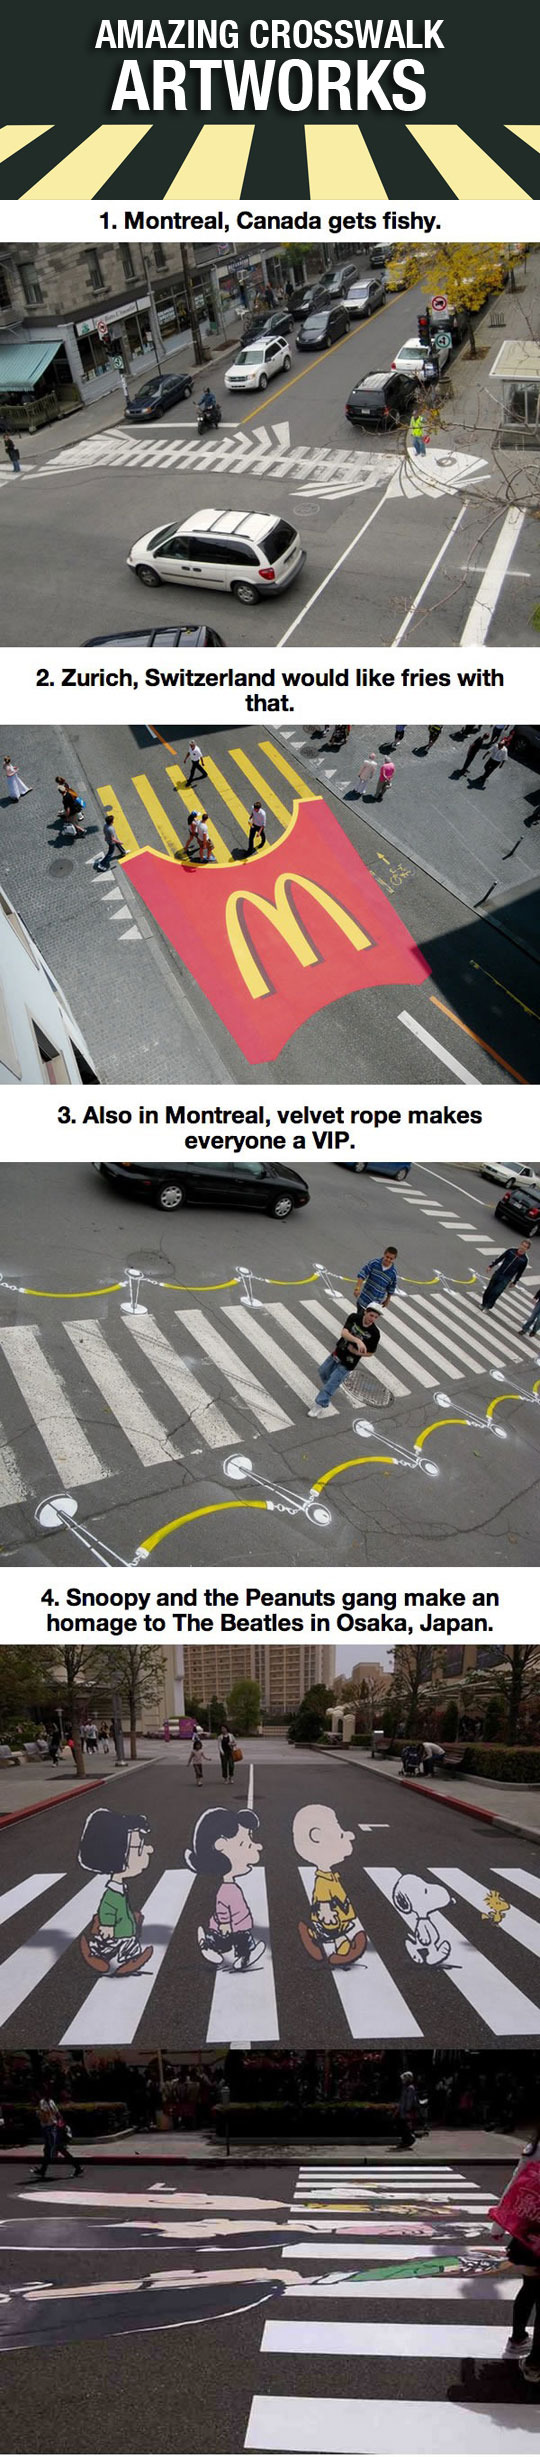 http://img.zzweb.ru/img/893031/funny-street-crossing-artwork-colors-paint.jpg